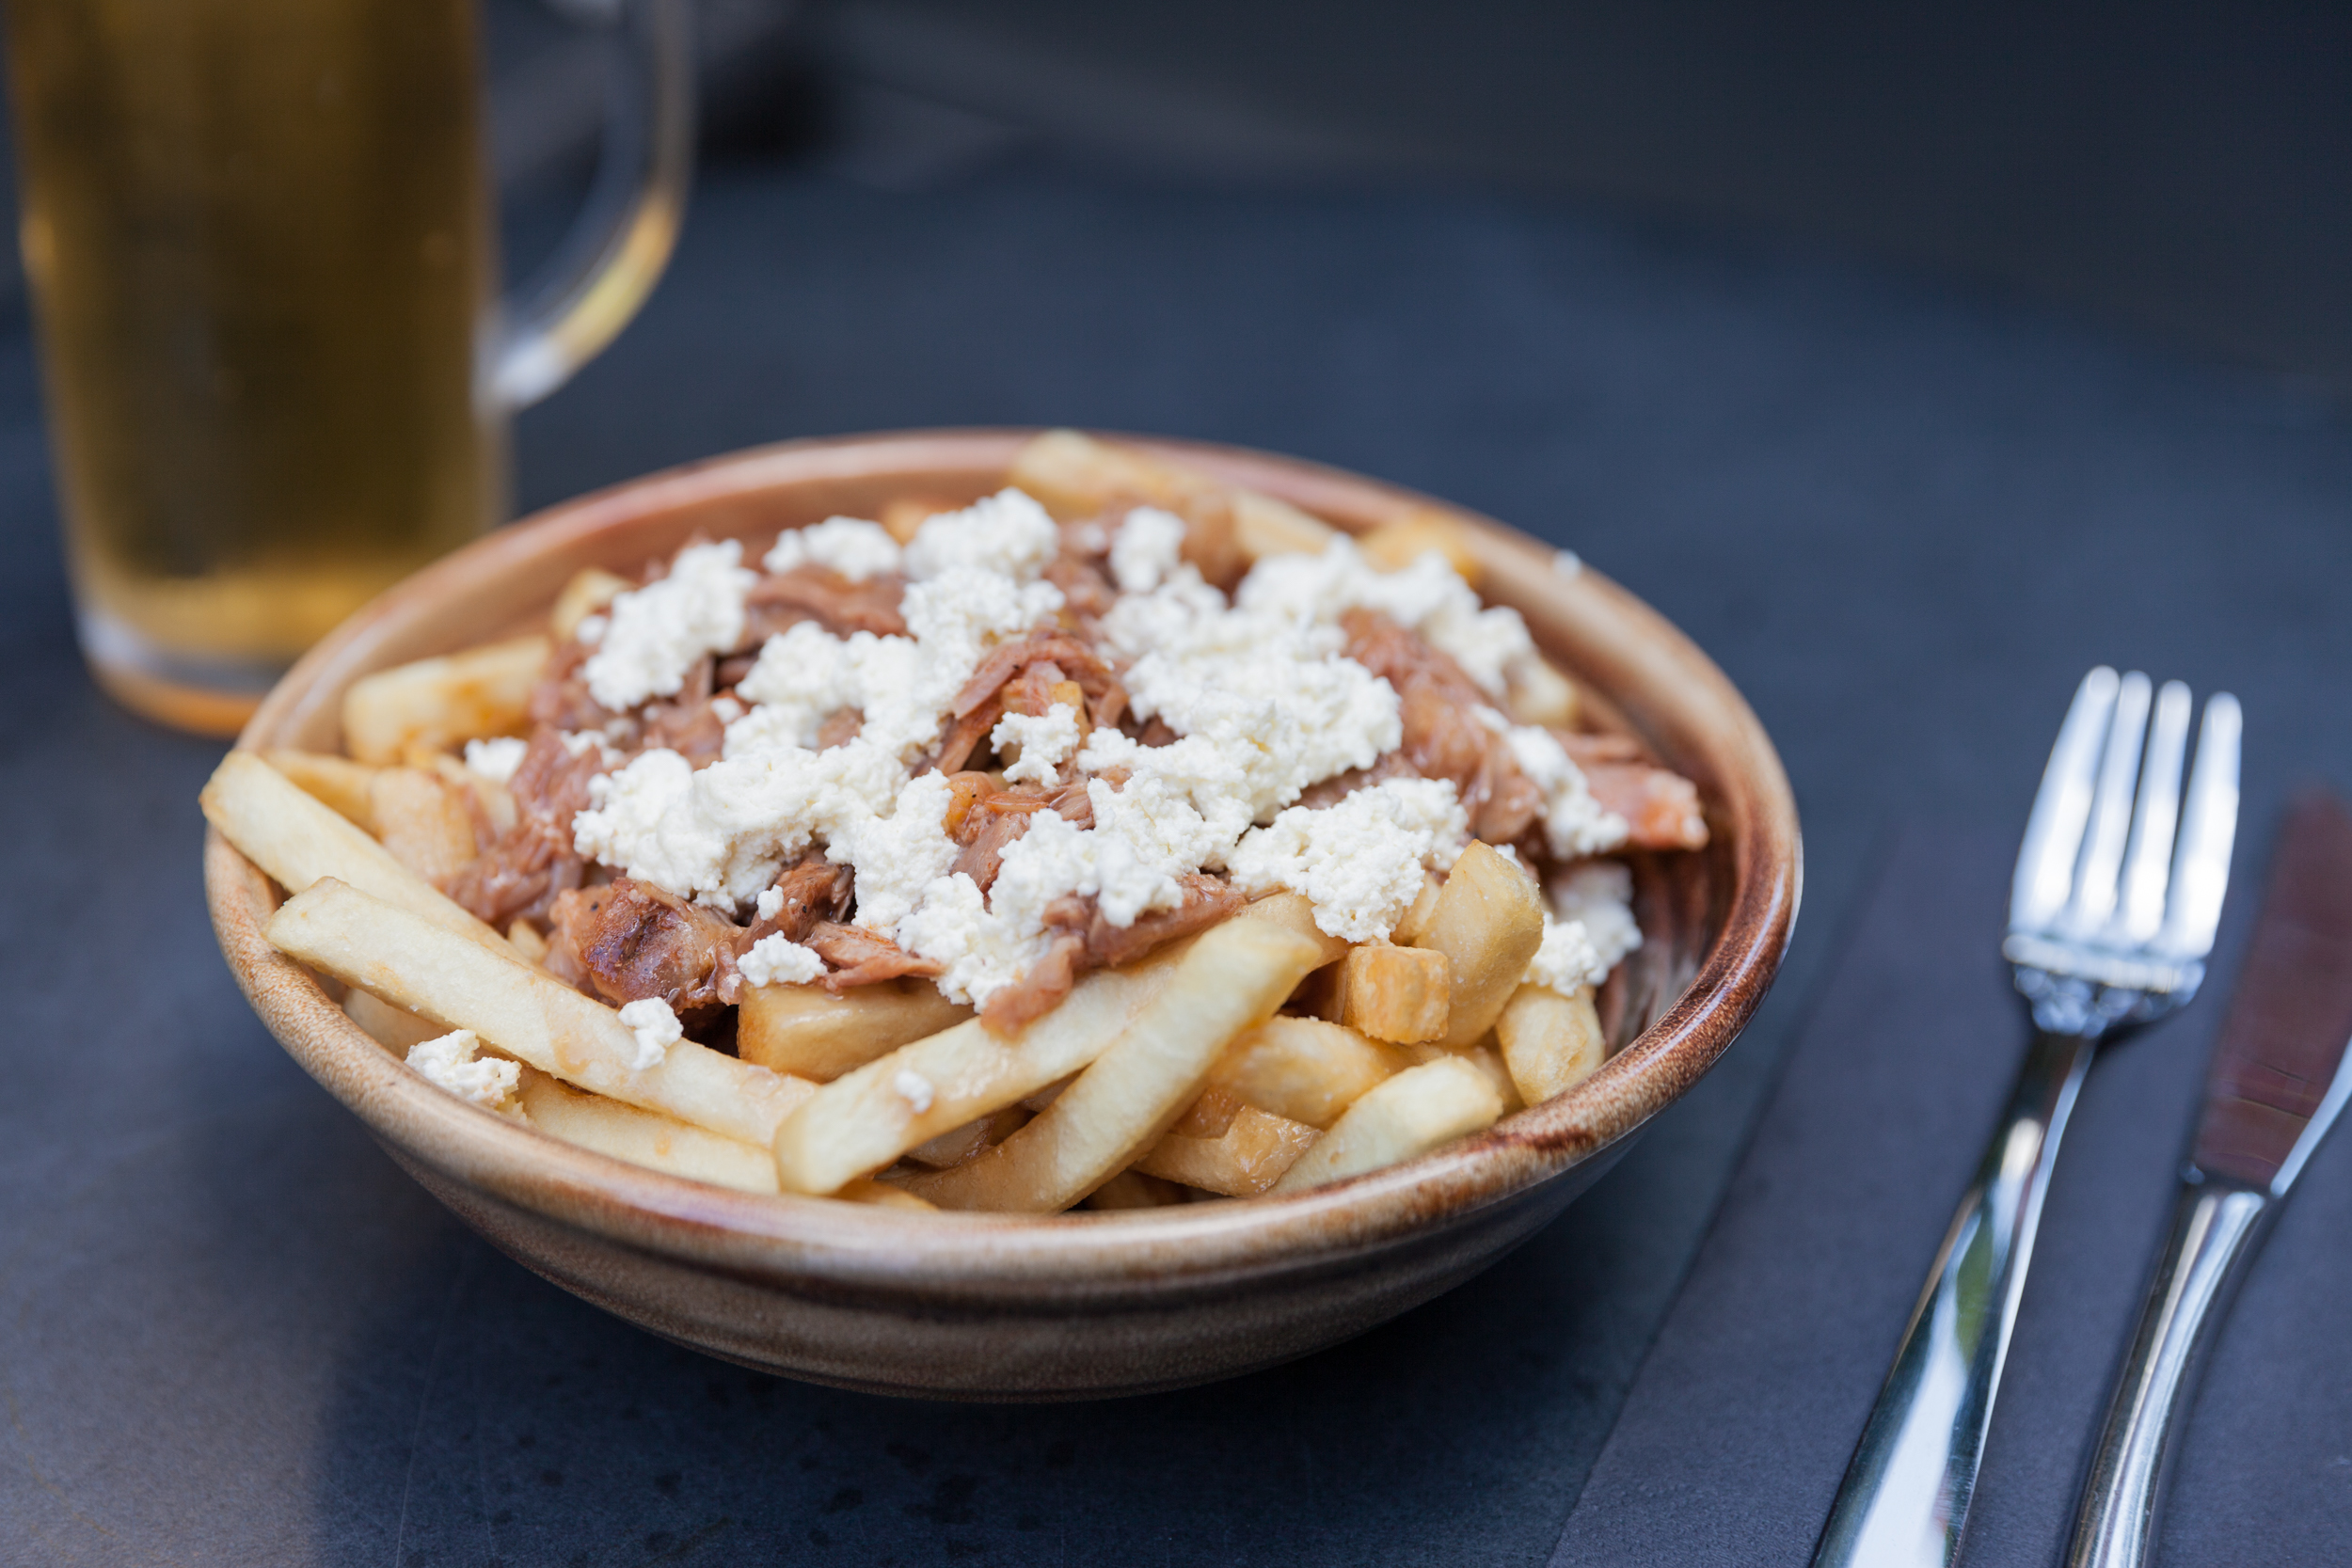 Poutine at Electra House Hotel